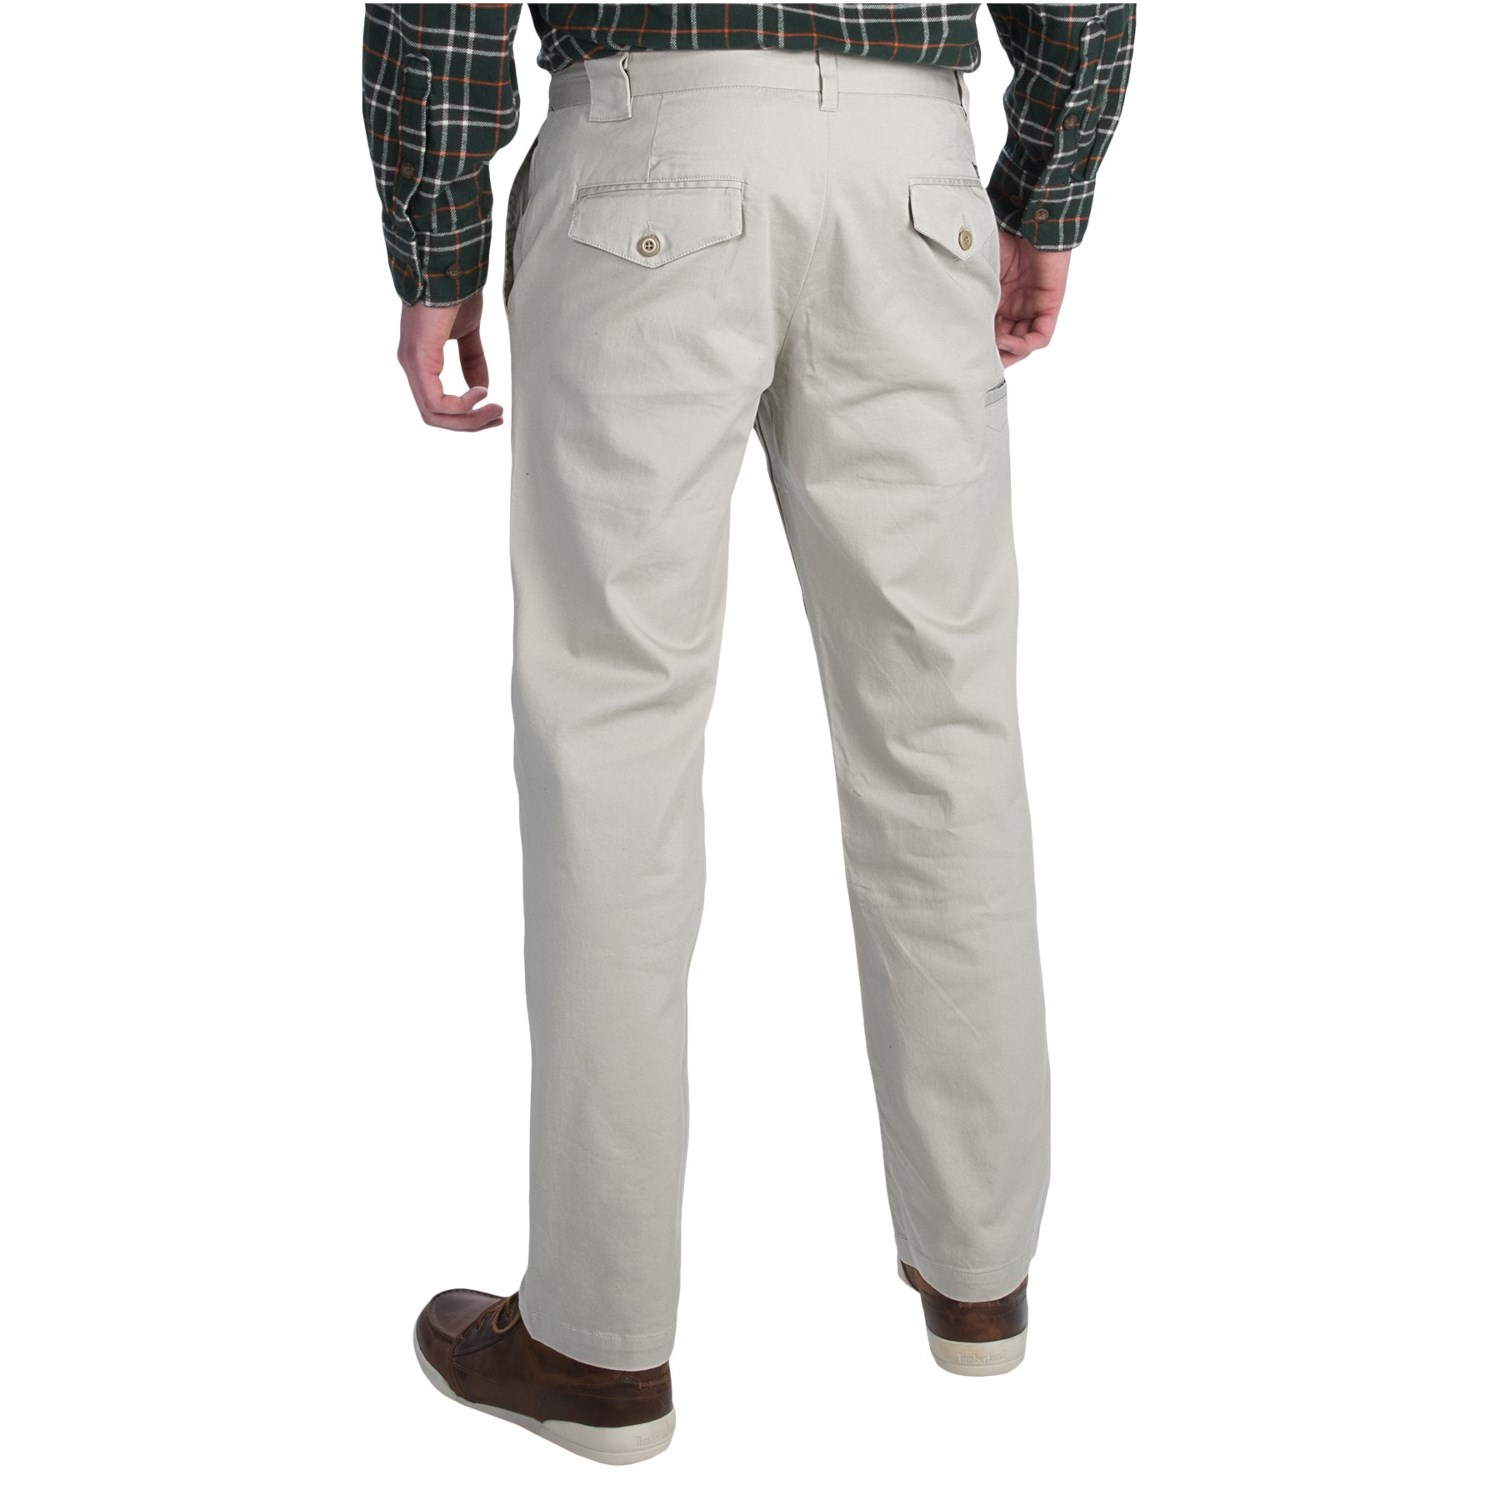 Woolrich The Guide Chino Pants (For Men)